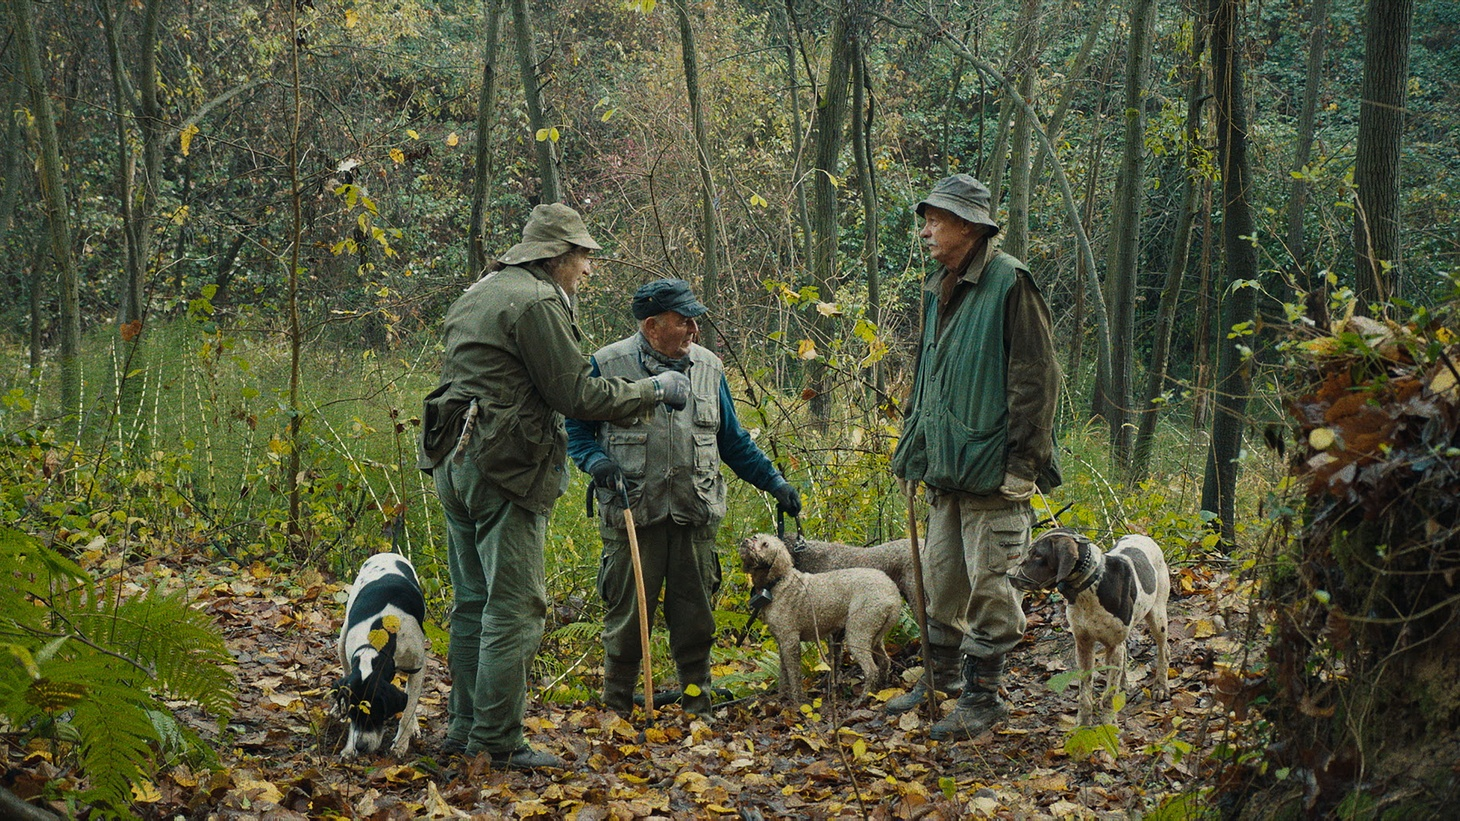 Sergio Cauda (left) with his dog Fiona and fellow truffle hunters.